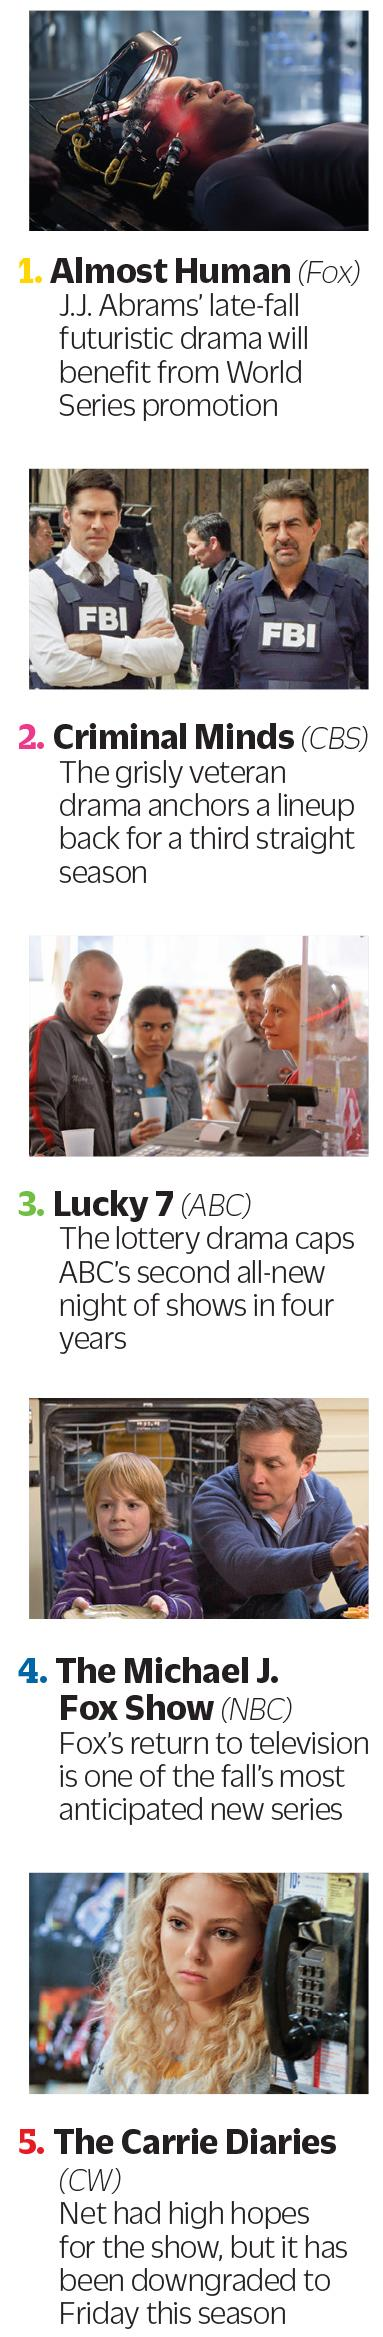 Upfronts: Networks Embrace Changes in Scheduling Patterns